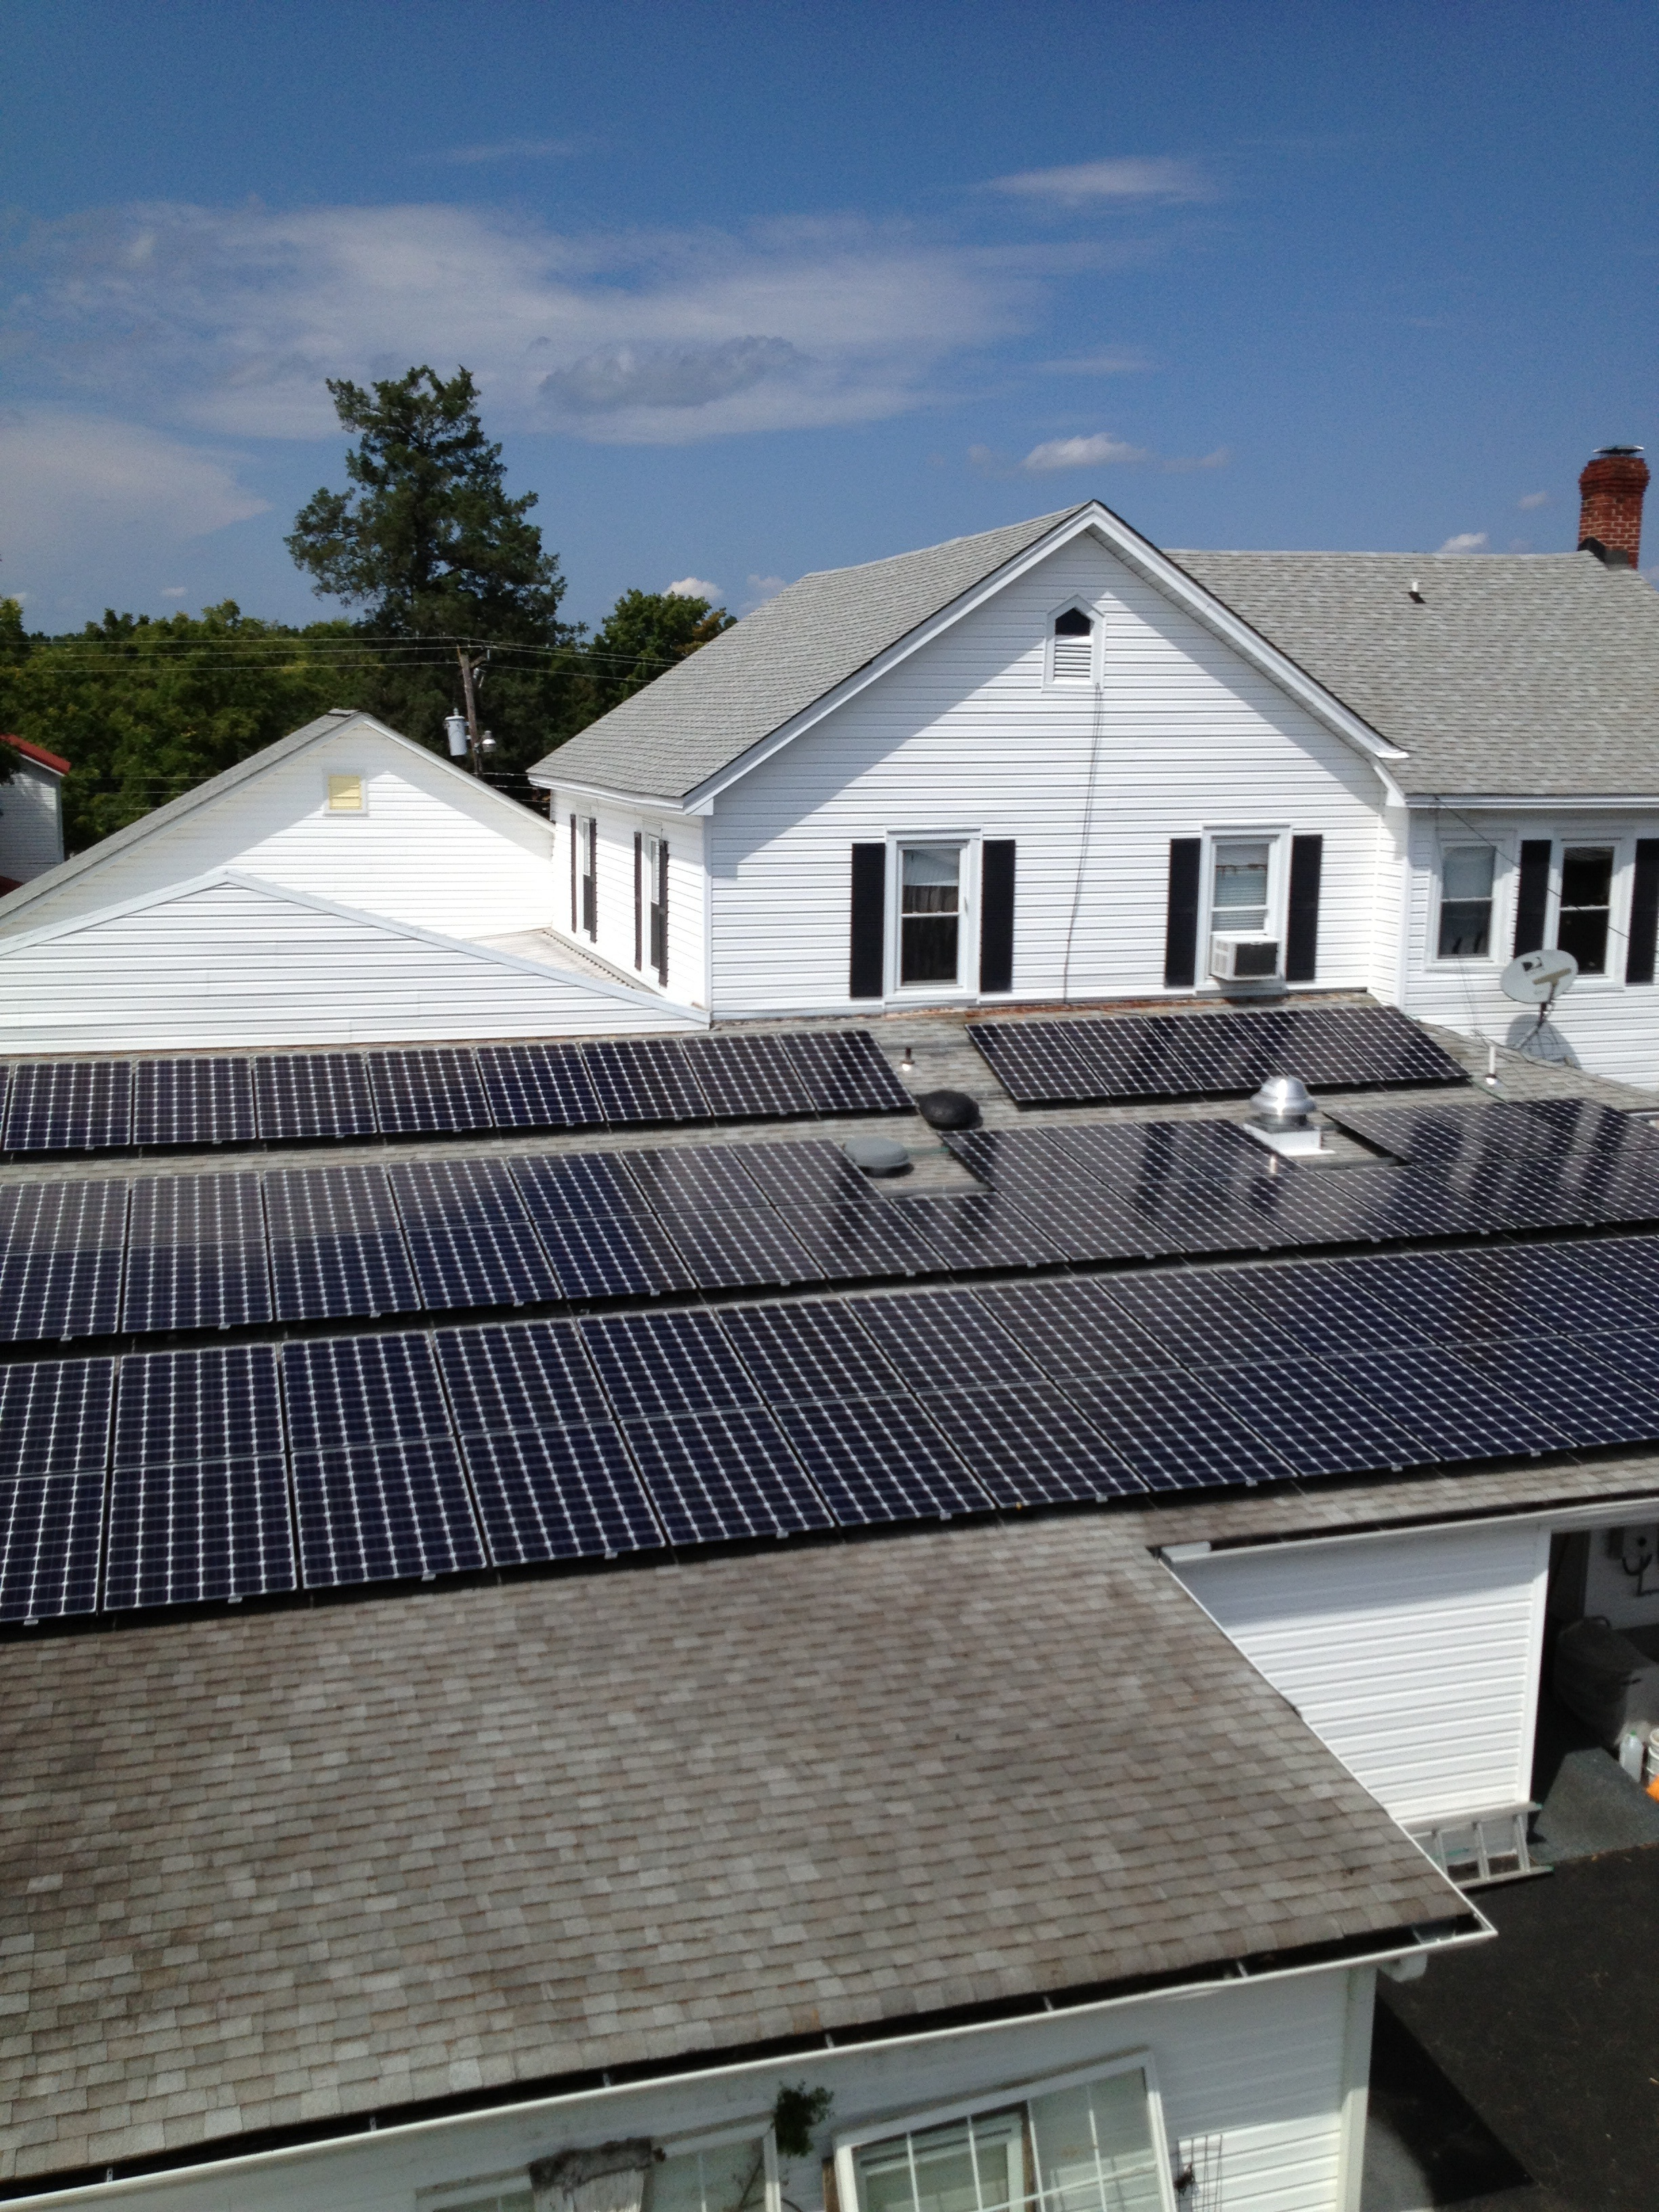 for dominion solar purchase program old dominion innovations inc